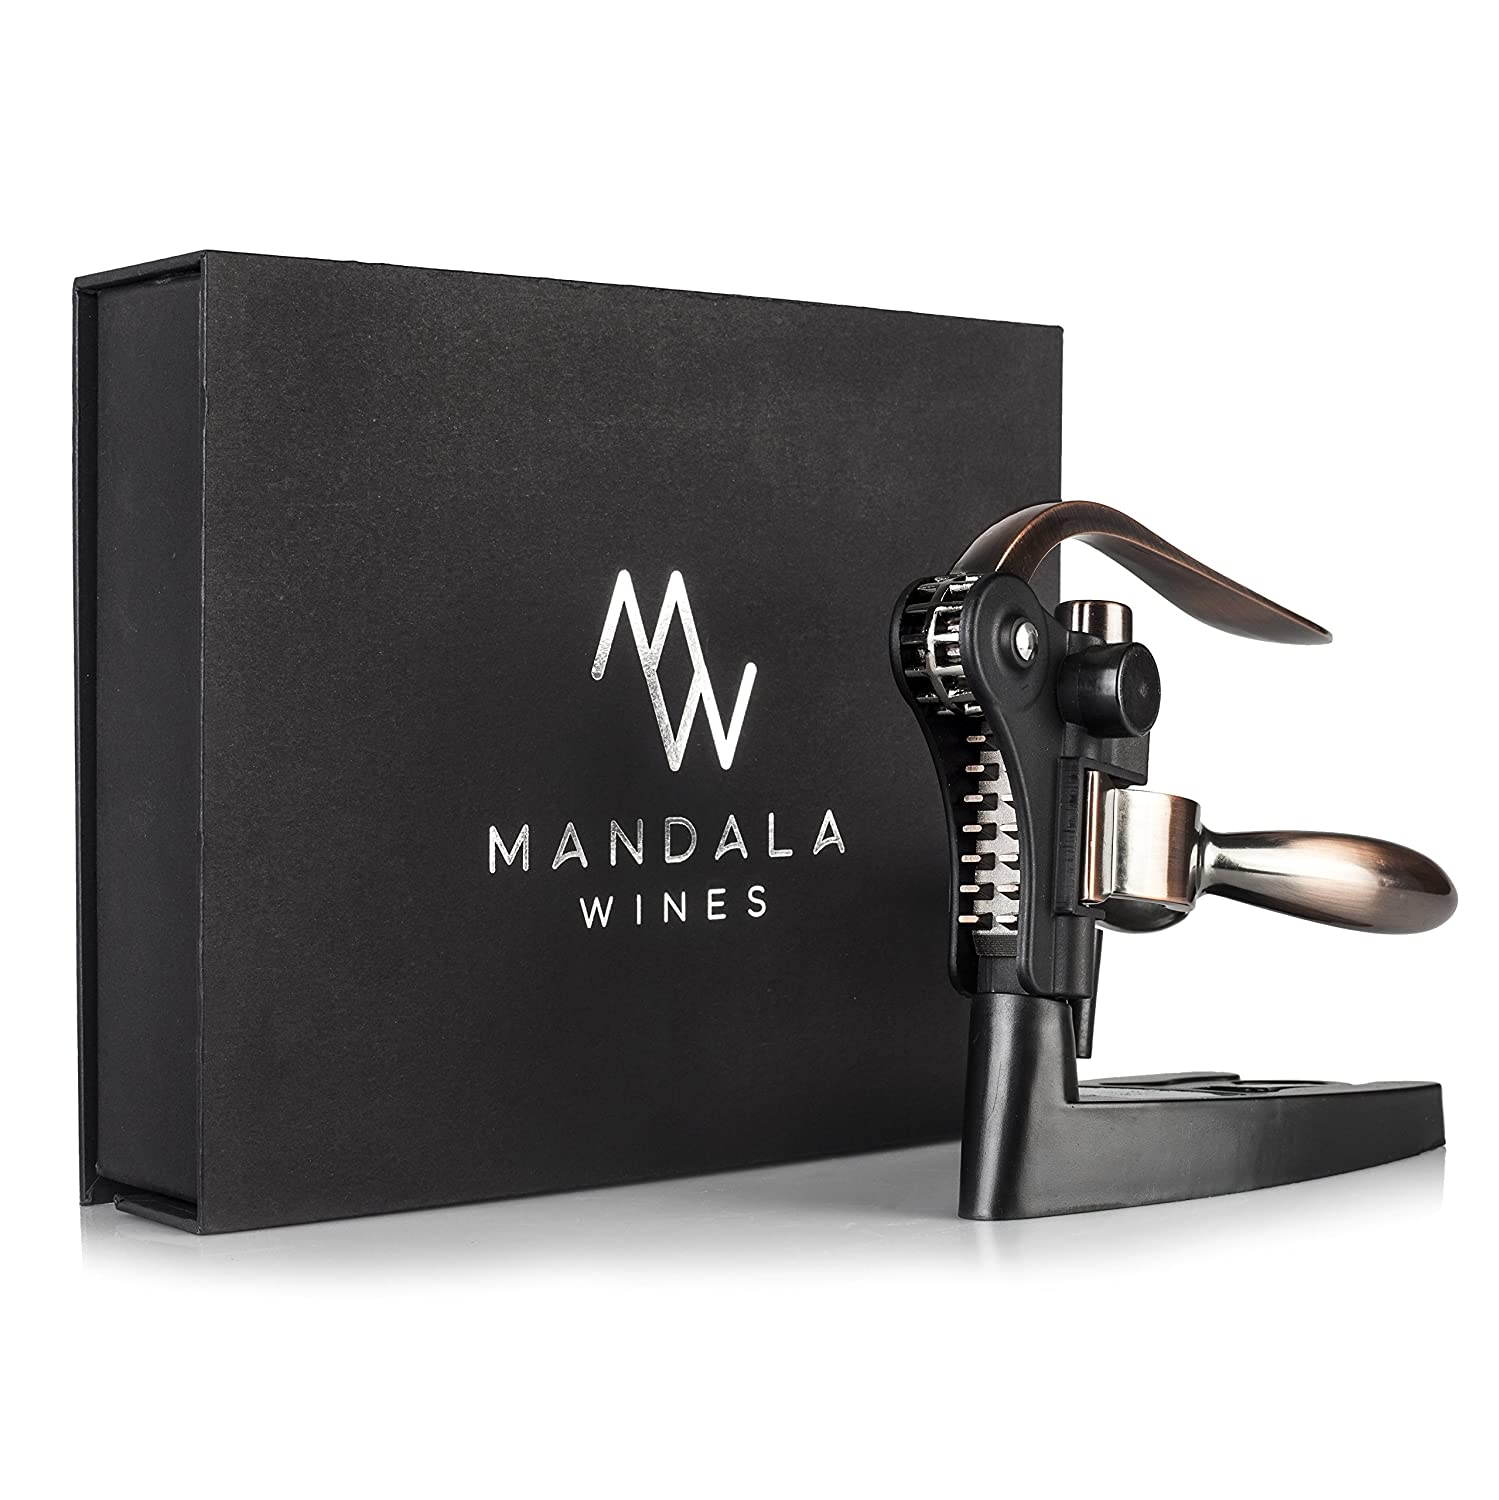 Rabbit Wine Bottle Opener Set: Bronze Metal Manual Wine Opening Accessories Tool Kit for Red, White or Rose Bottles with Elegant Portable Rabbit Opener, Black Foil Cutter, Spiral Corkscrew and Stand